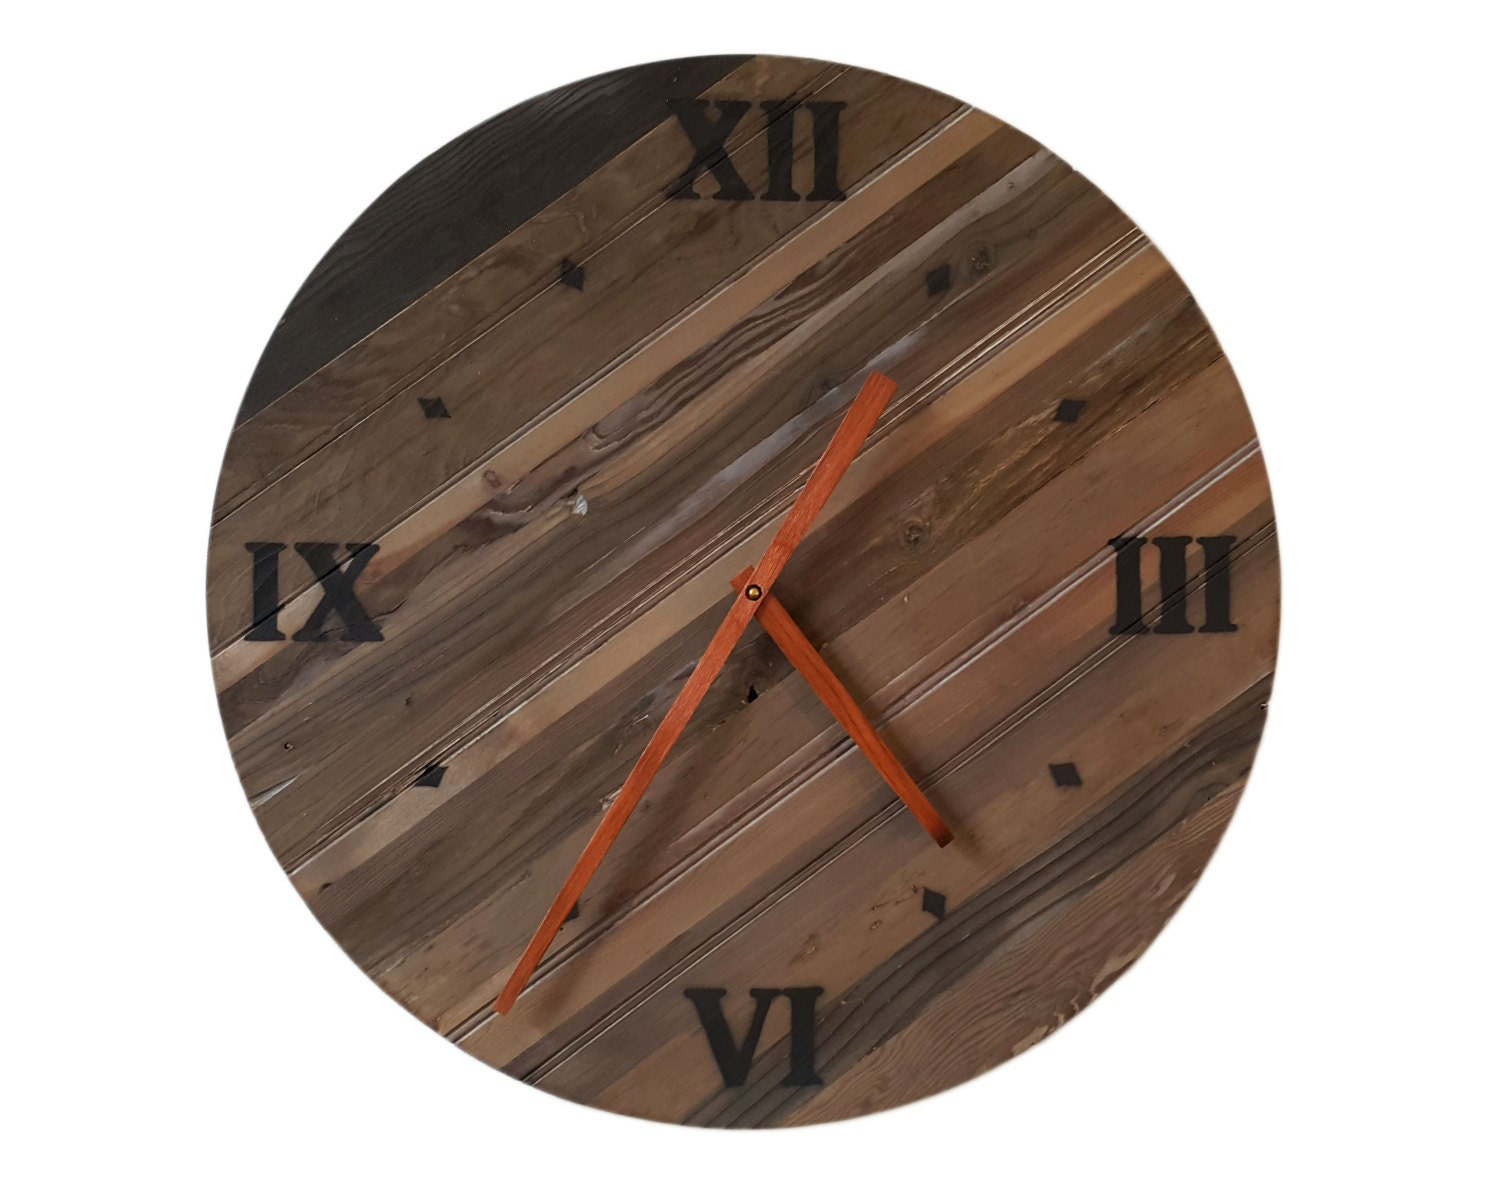 24 Inch Reclaimed Wood Wall Clock By Hilltopworkshop On Etsy